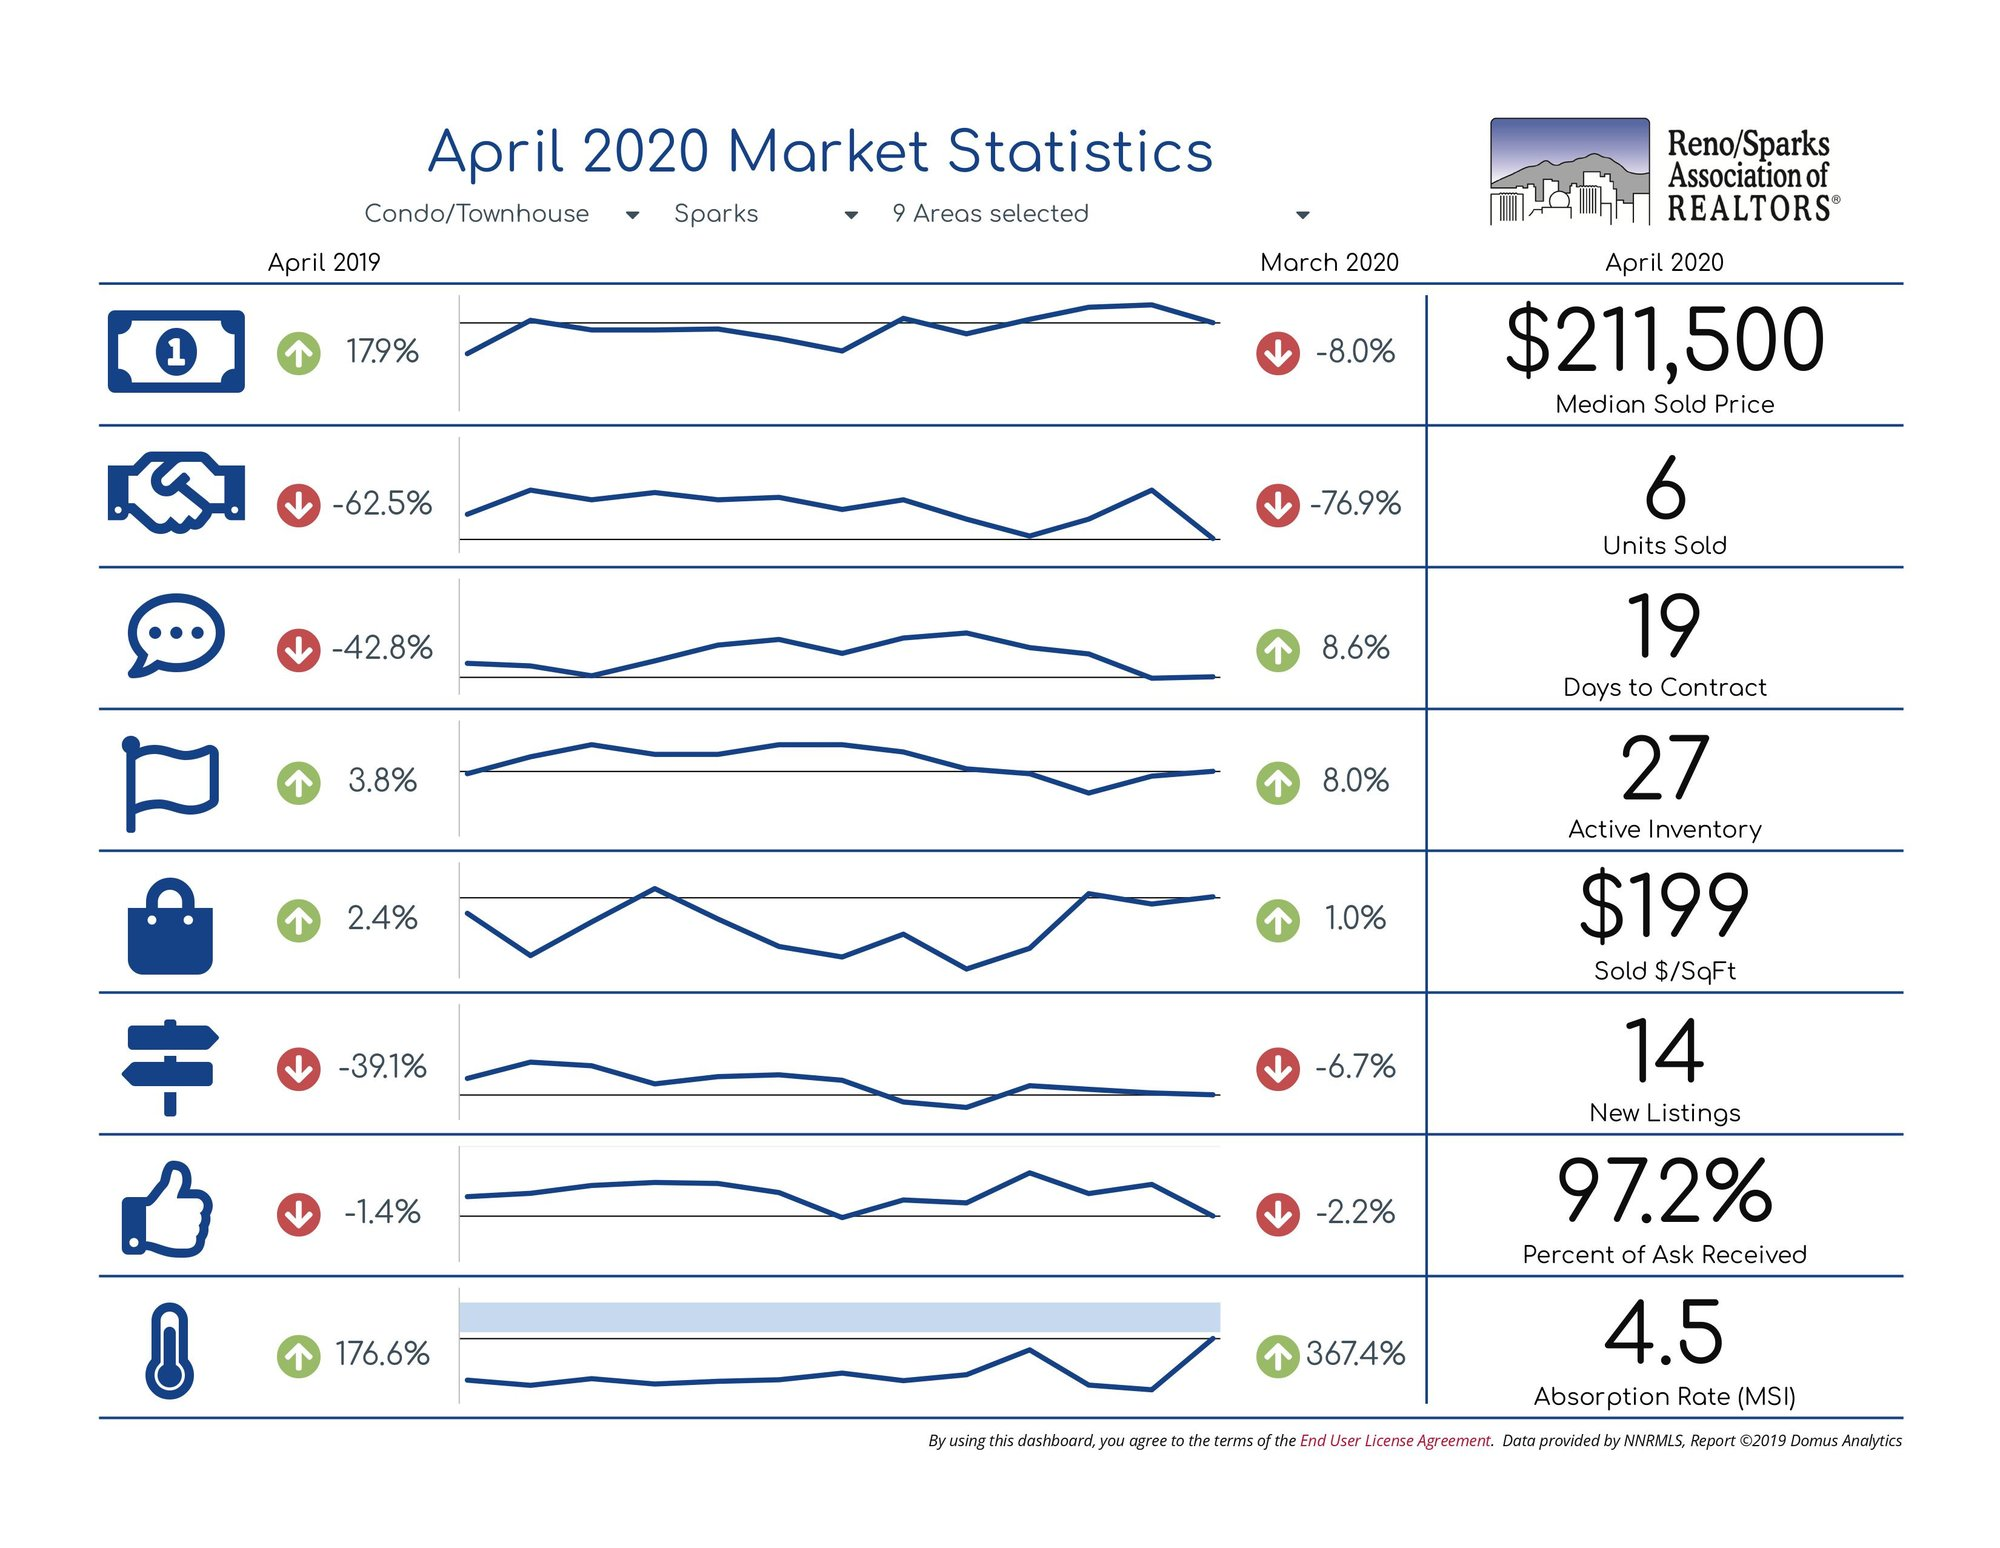 Market Statistics Condo Townhouse Sparks